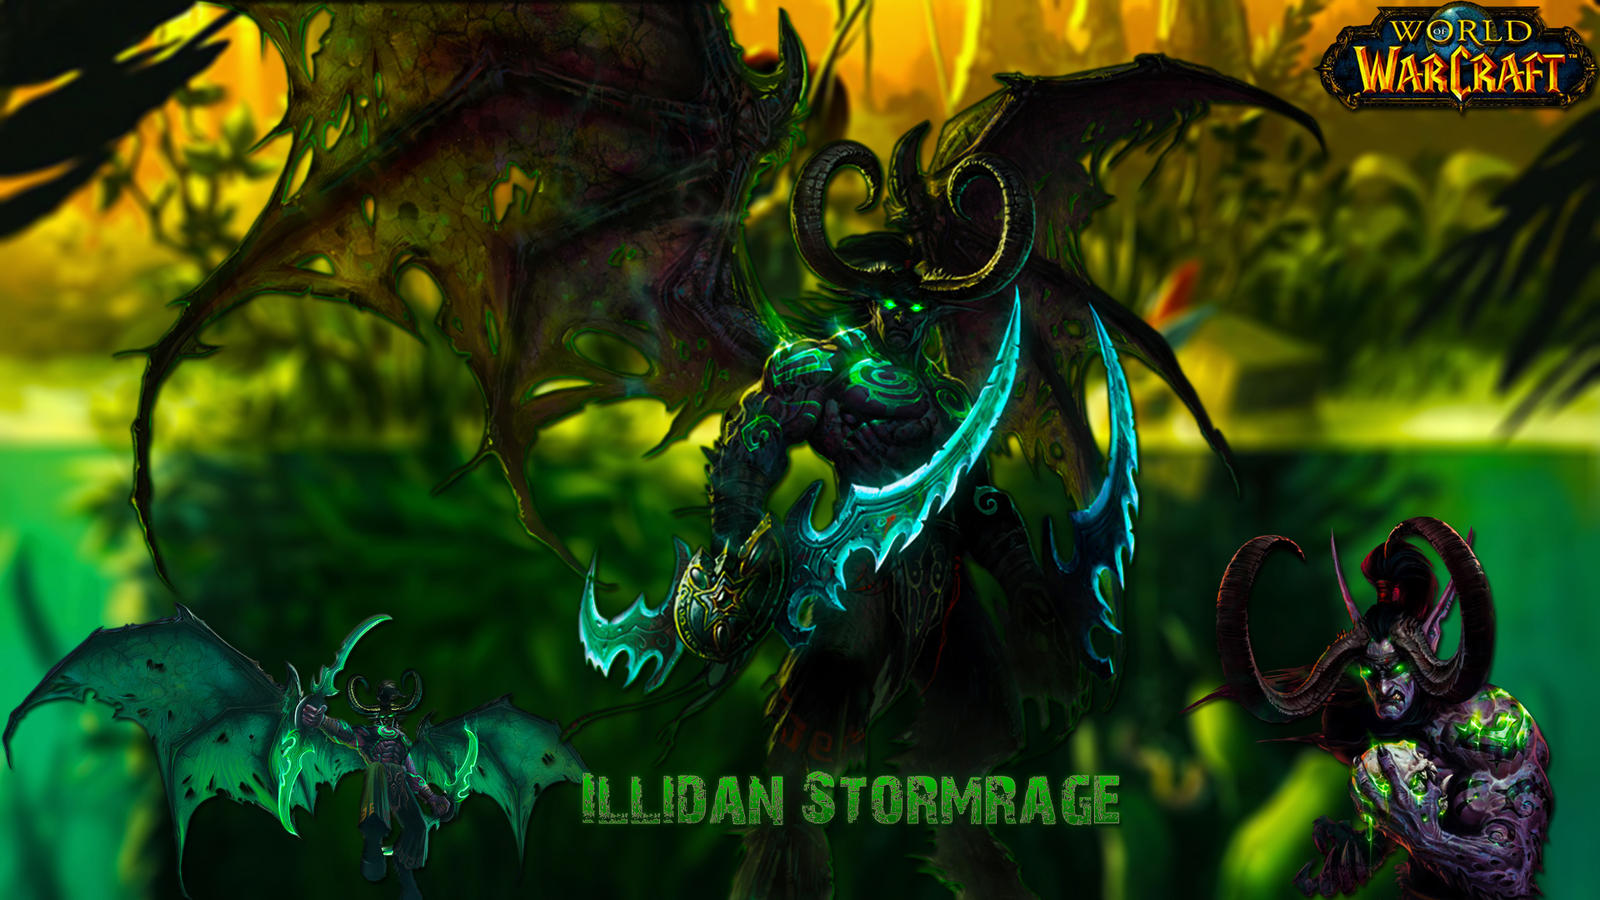 Worl Of Warcraft Illidan Stormrage Wallpaper By Liongraphics On